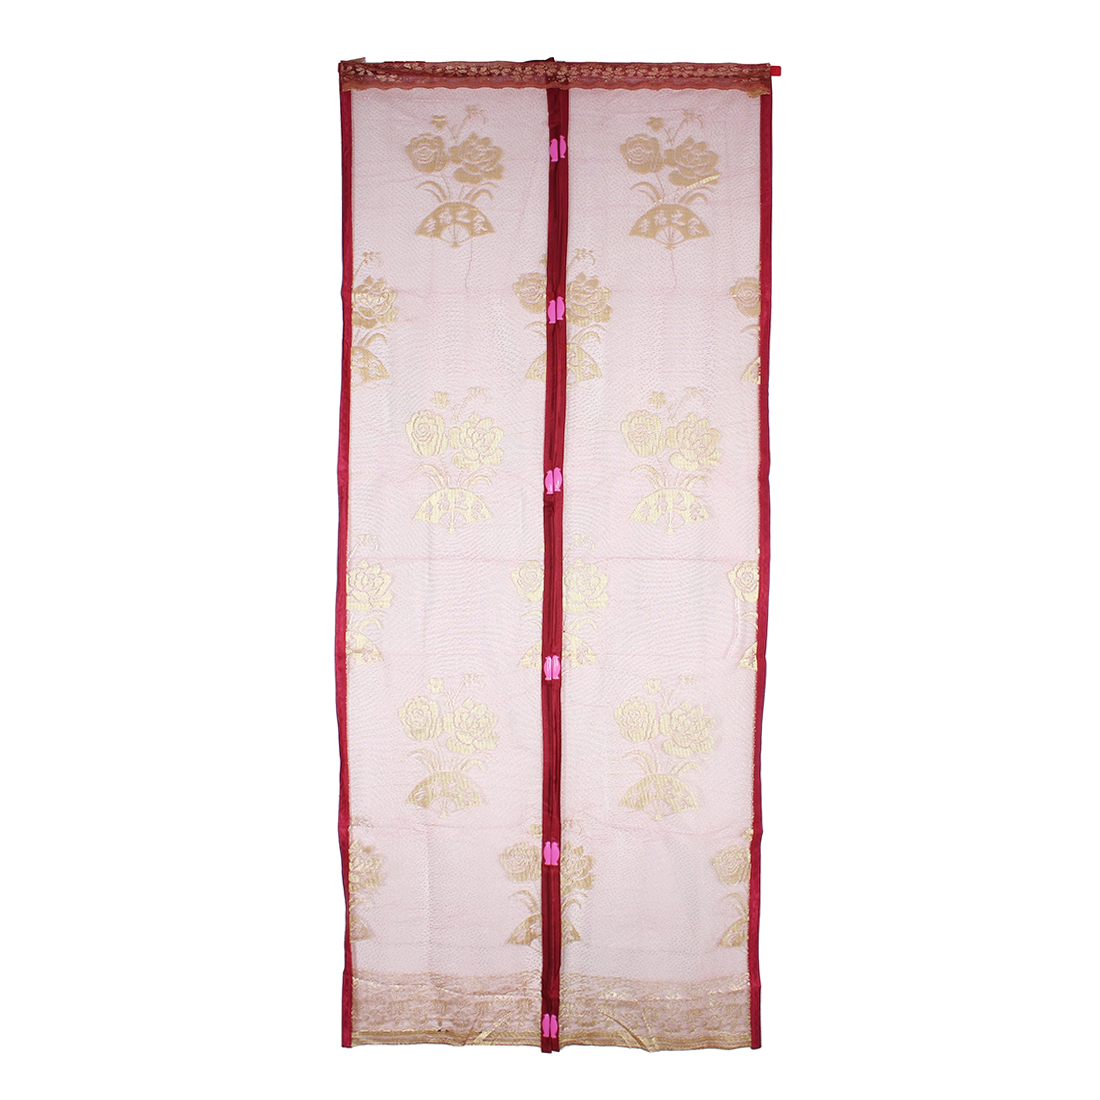 Flower Magnetic Fastening Curtain Soft Insect Screen Door Dark Red